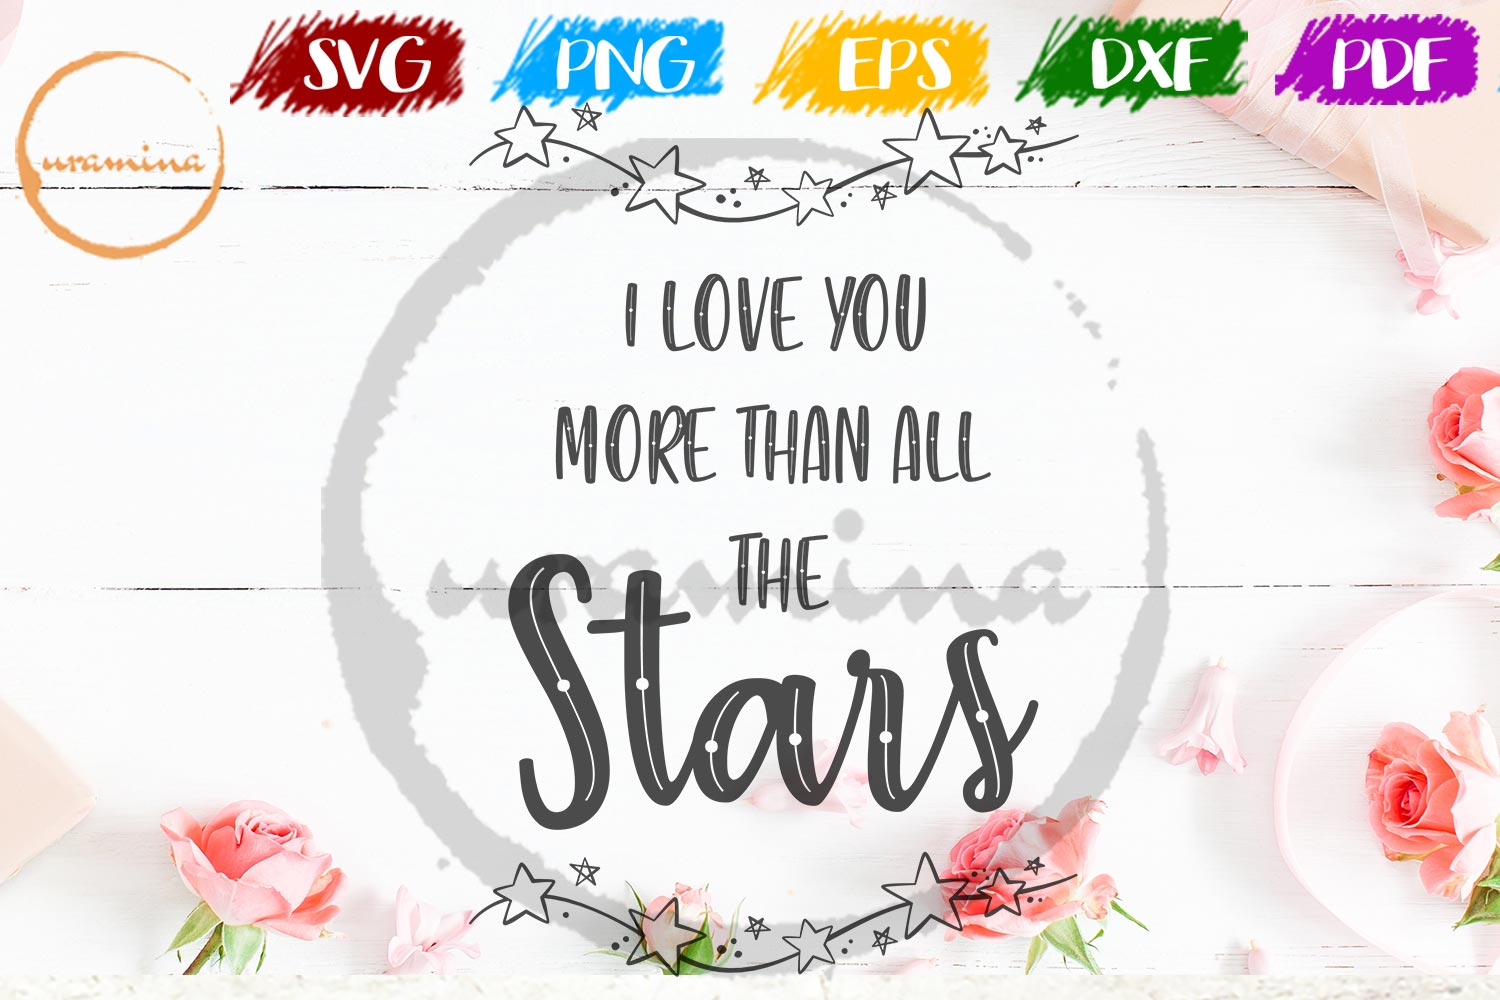 Download Free I Love You More Than All The Stars Graphic By Uramina Creative for Cricut Explore, Silhouette and other cutting machines.